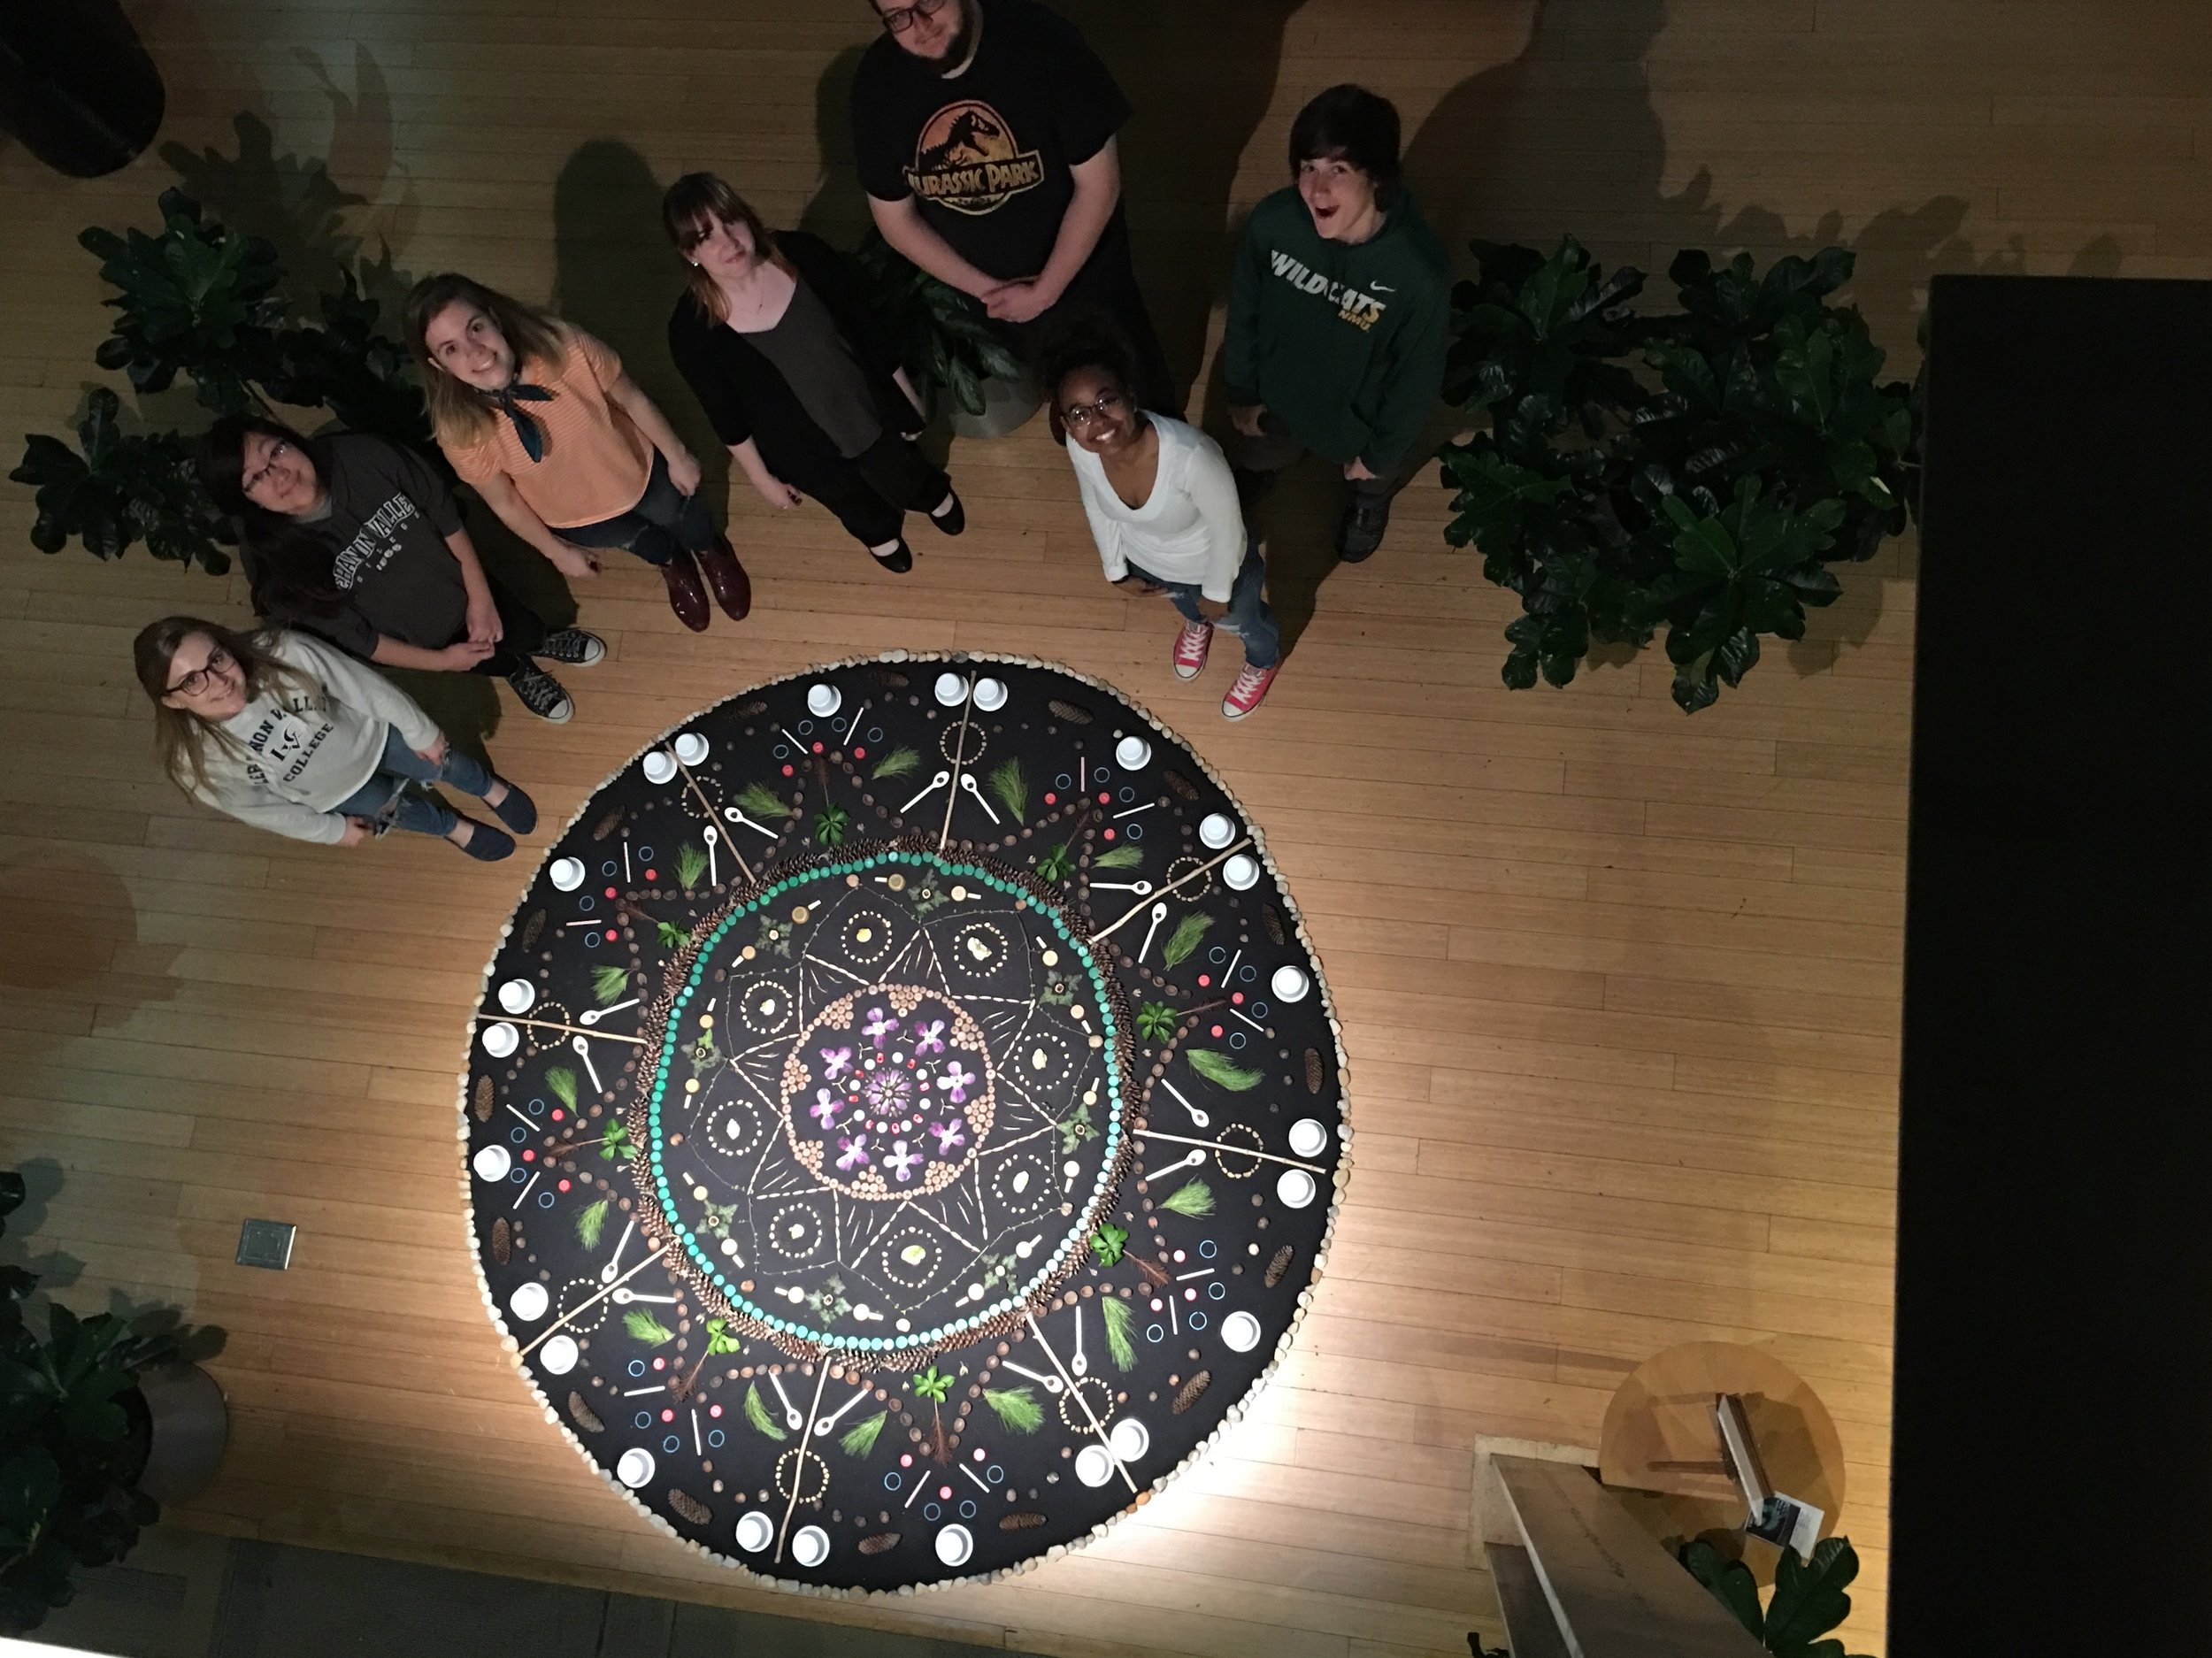 Mandala of found organic and man-made objects created by my Sculpture class at Lebanon Valley College for Earth Day 2018.